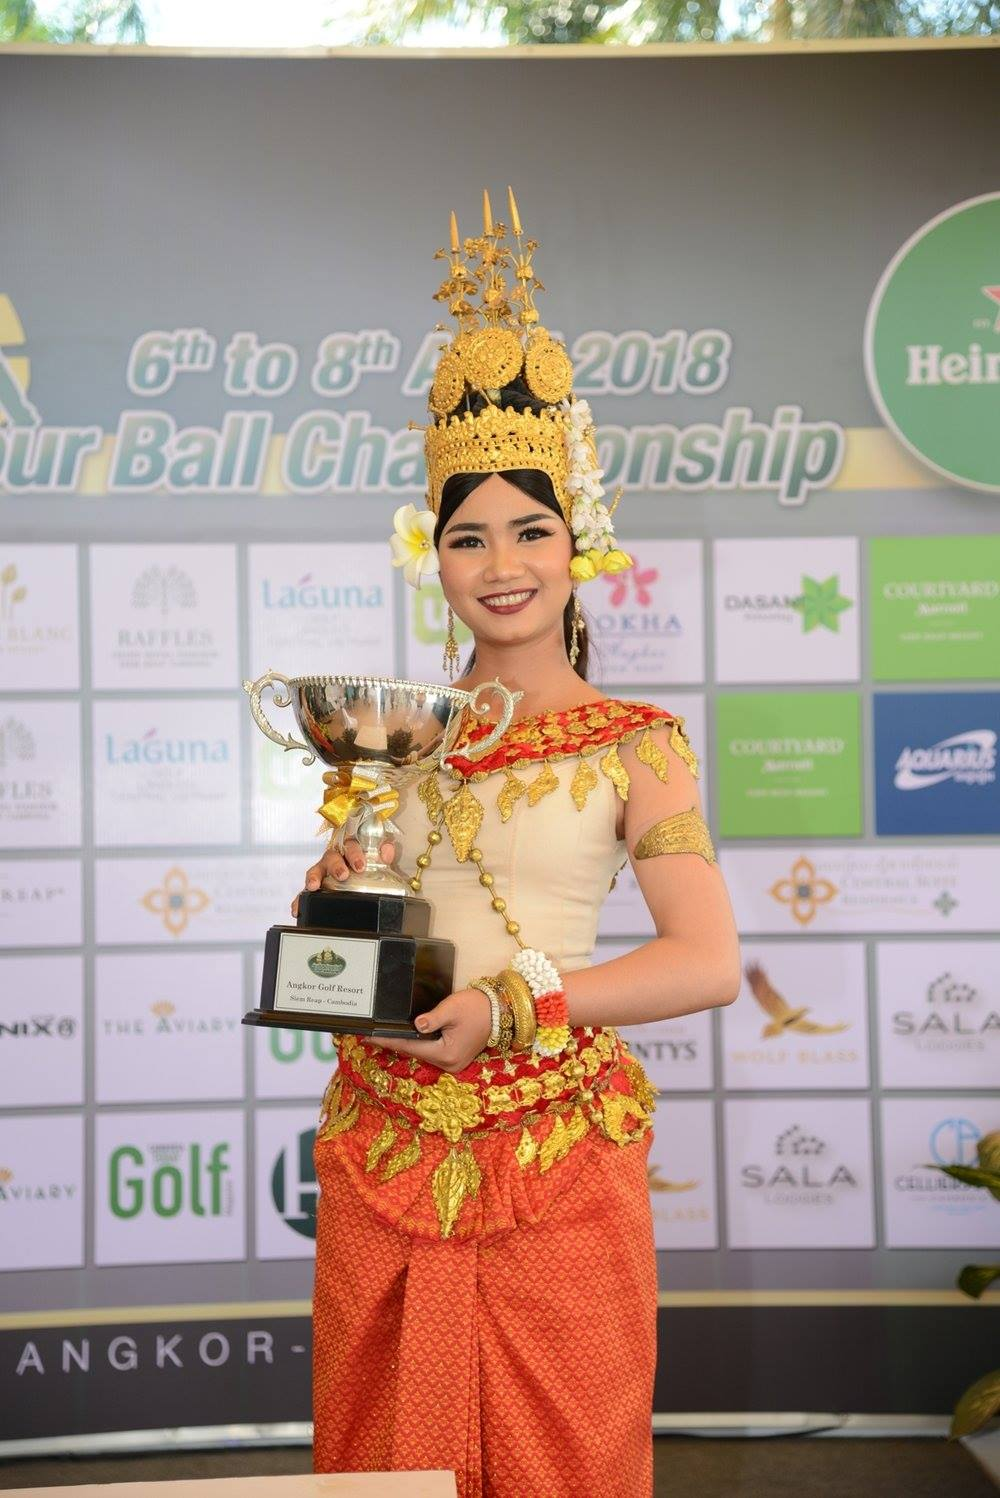 Angkor Four Ball Championship 2018